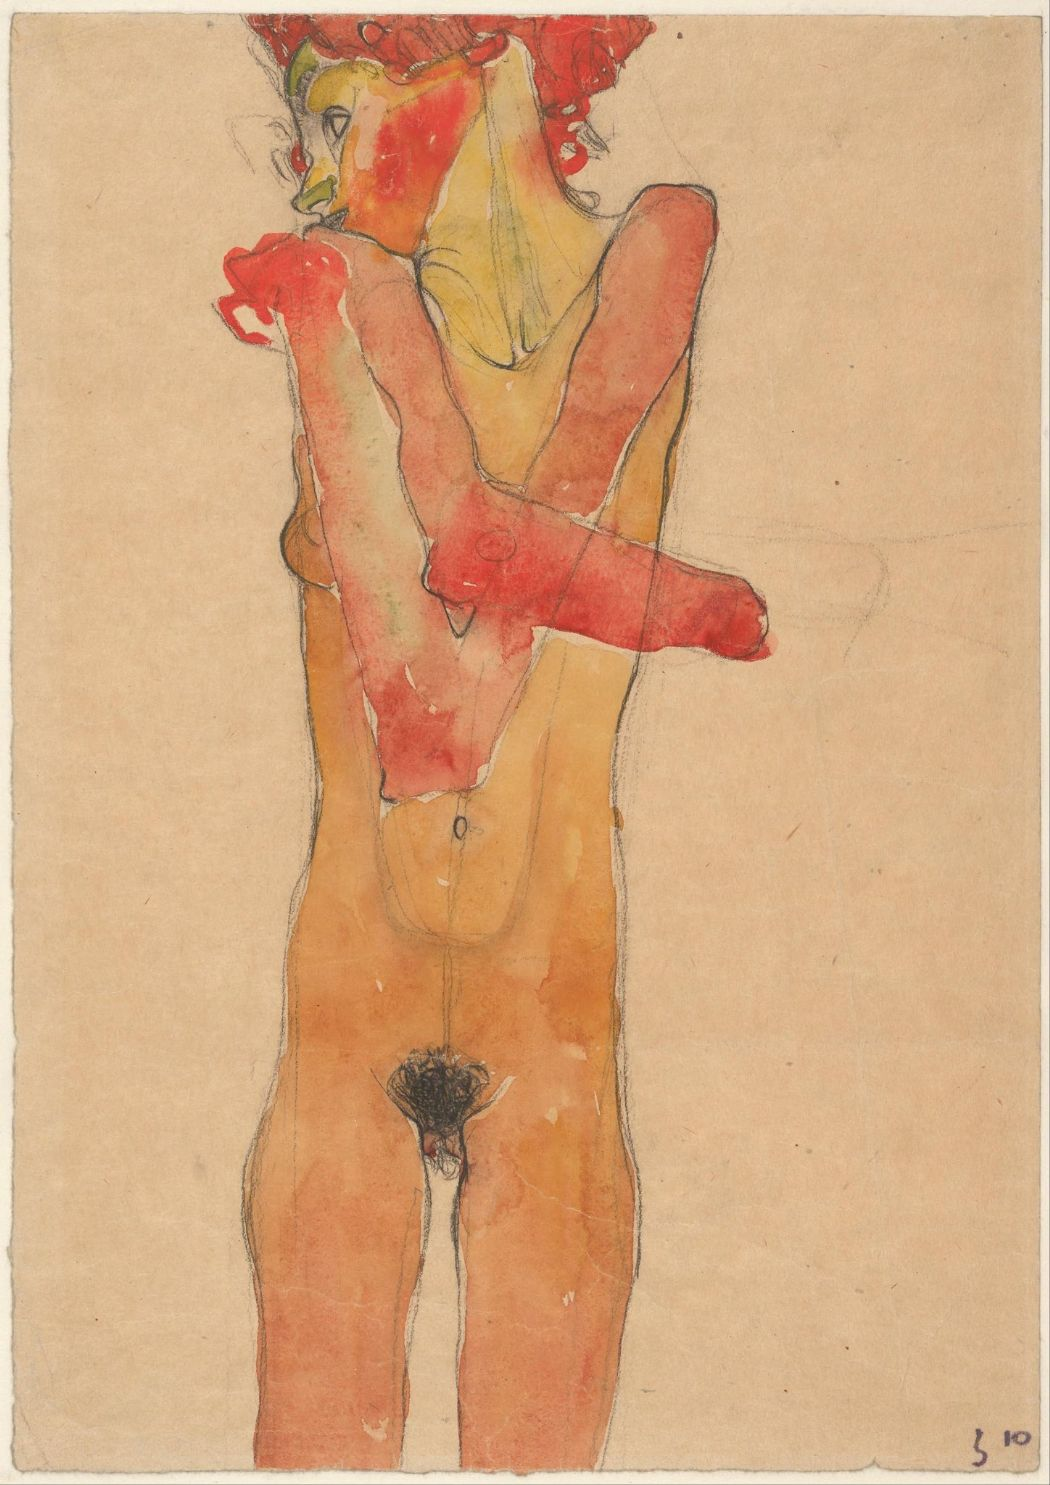 Schiele, Egon: Girl Nude with Folded Arms. Fine Art Print/Poster. Sizes: A4/A3/A2/A1 (003681)